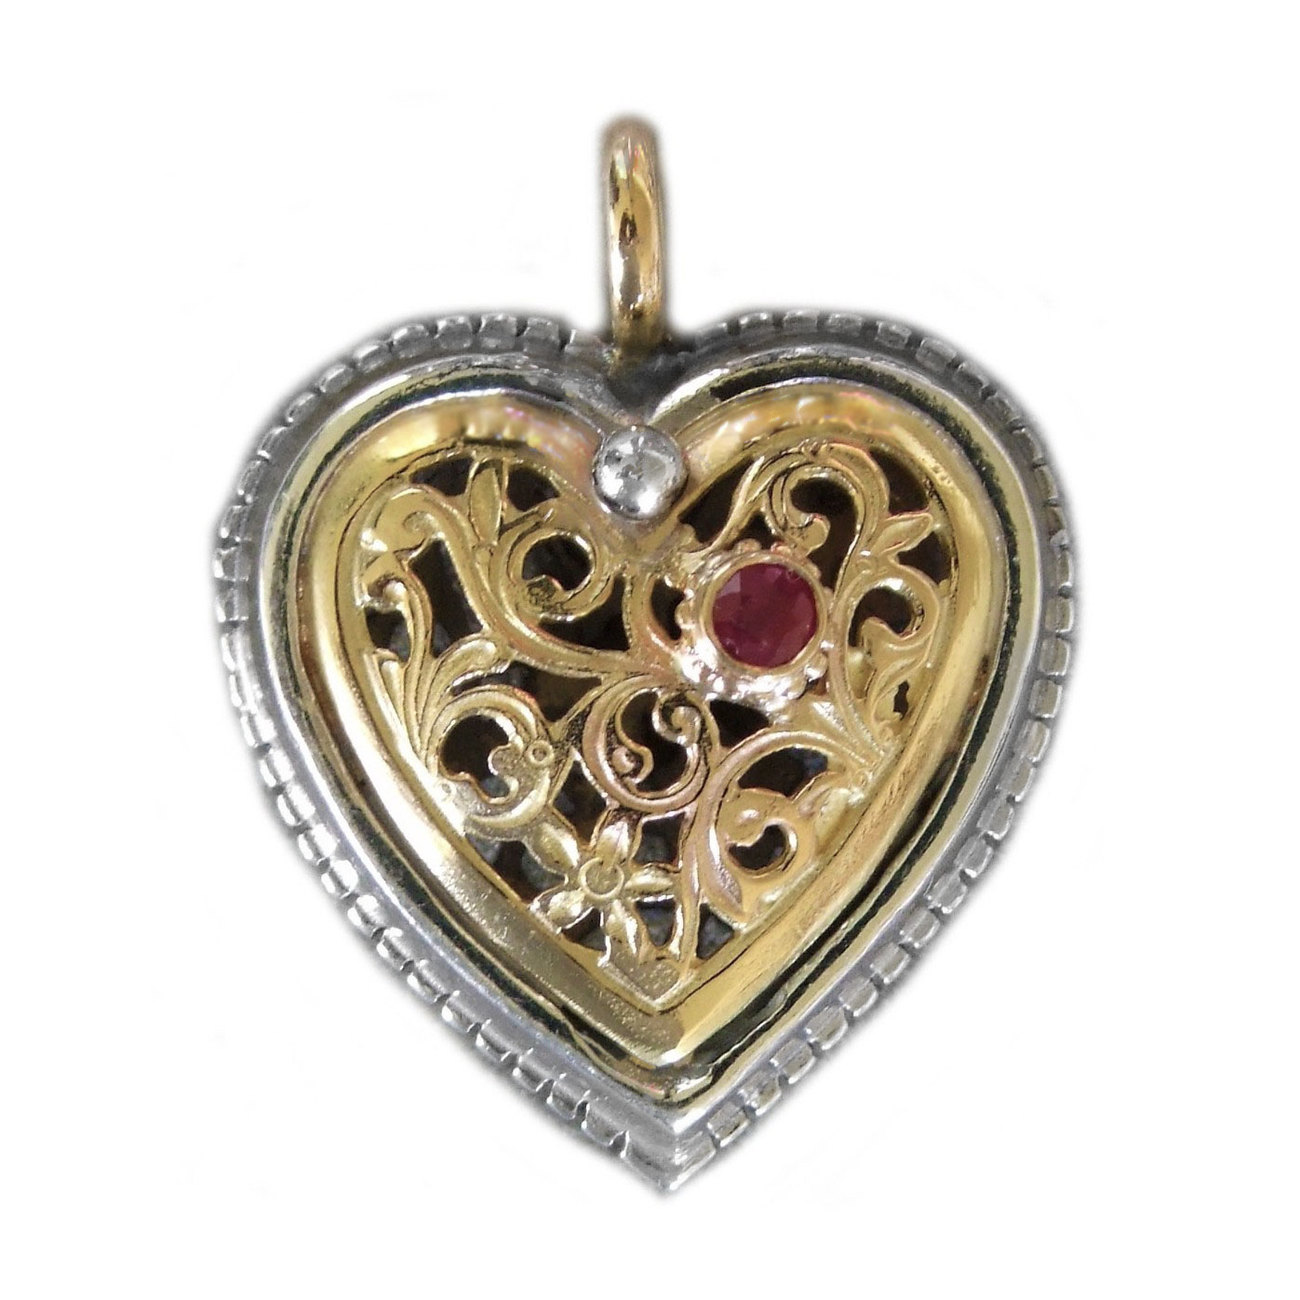 Primary image for Gerochristo 1354 -  Solid Gold, Silver & Ruby Filigree Heart Pendant